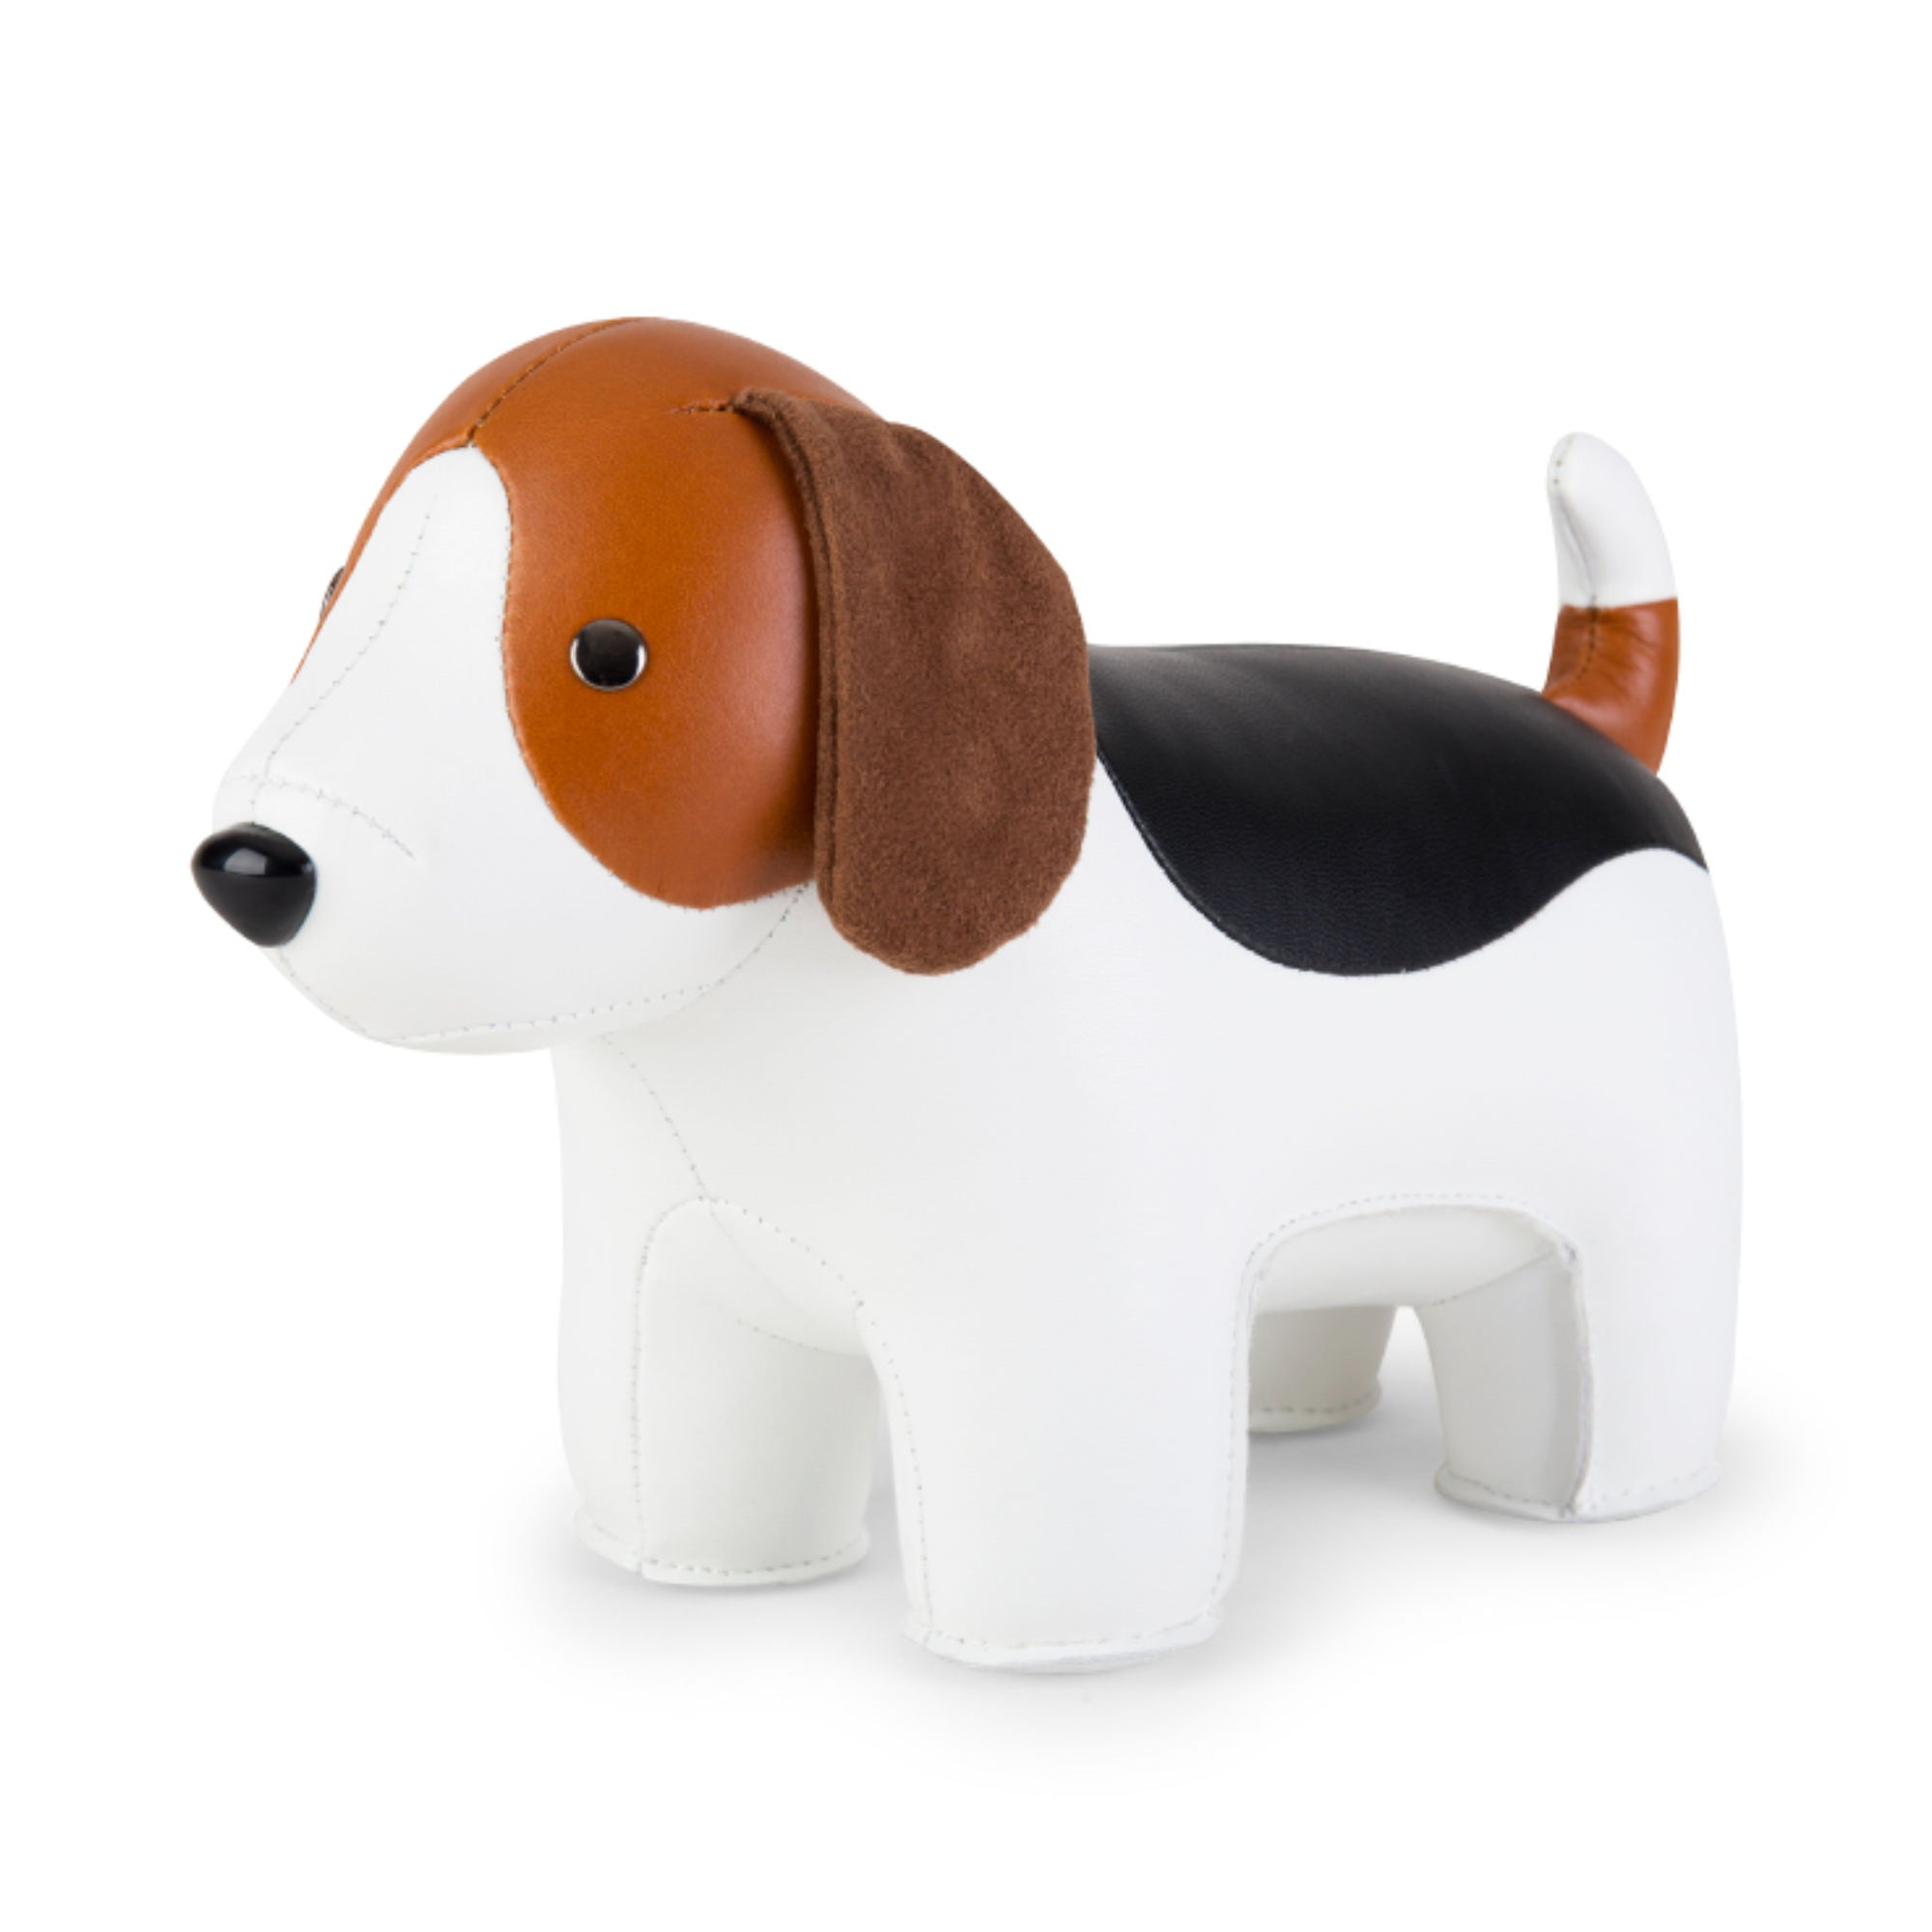 Zuny Classic Beagle bookend, white - tan